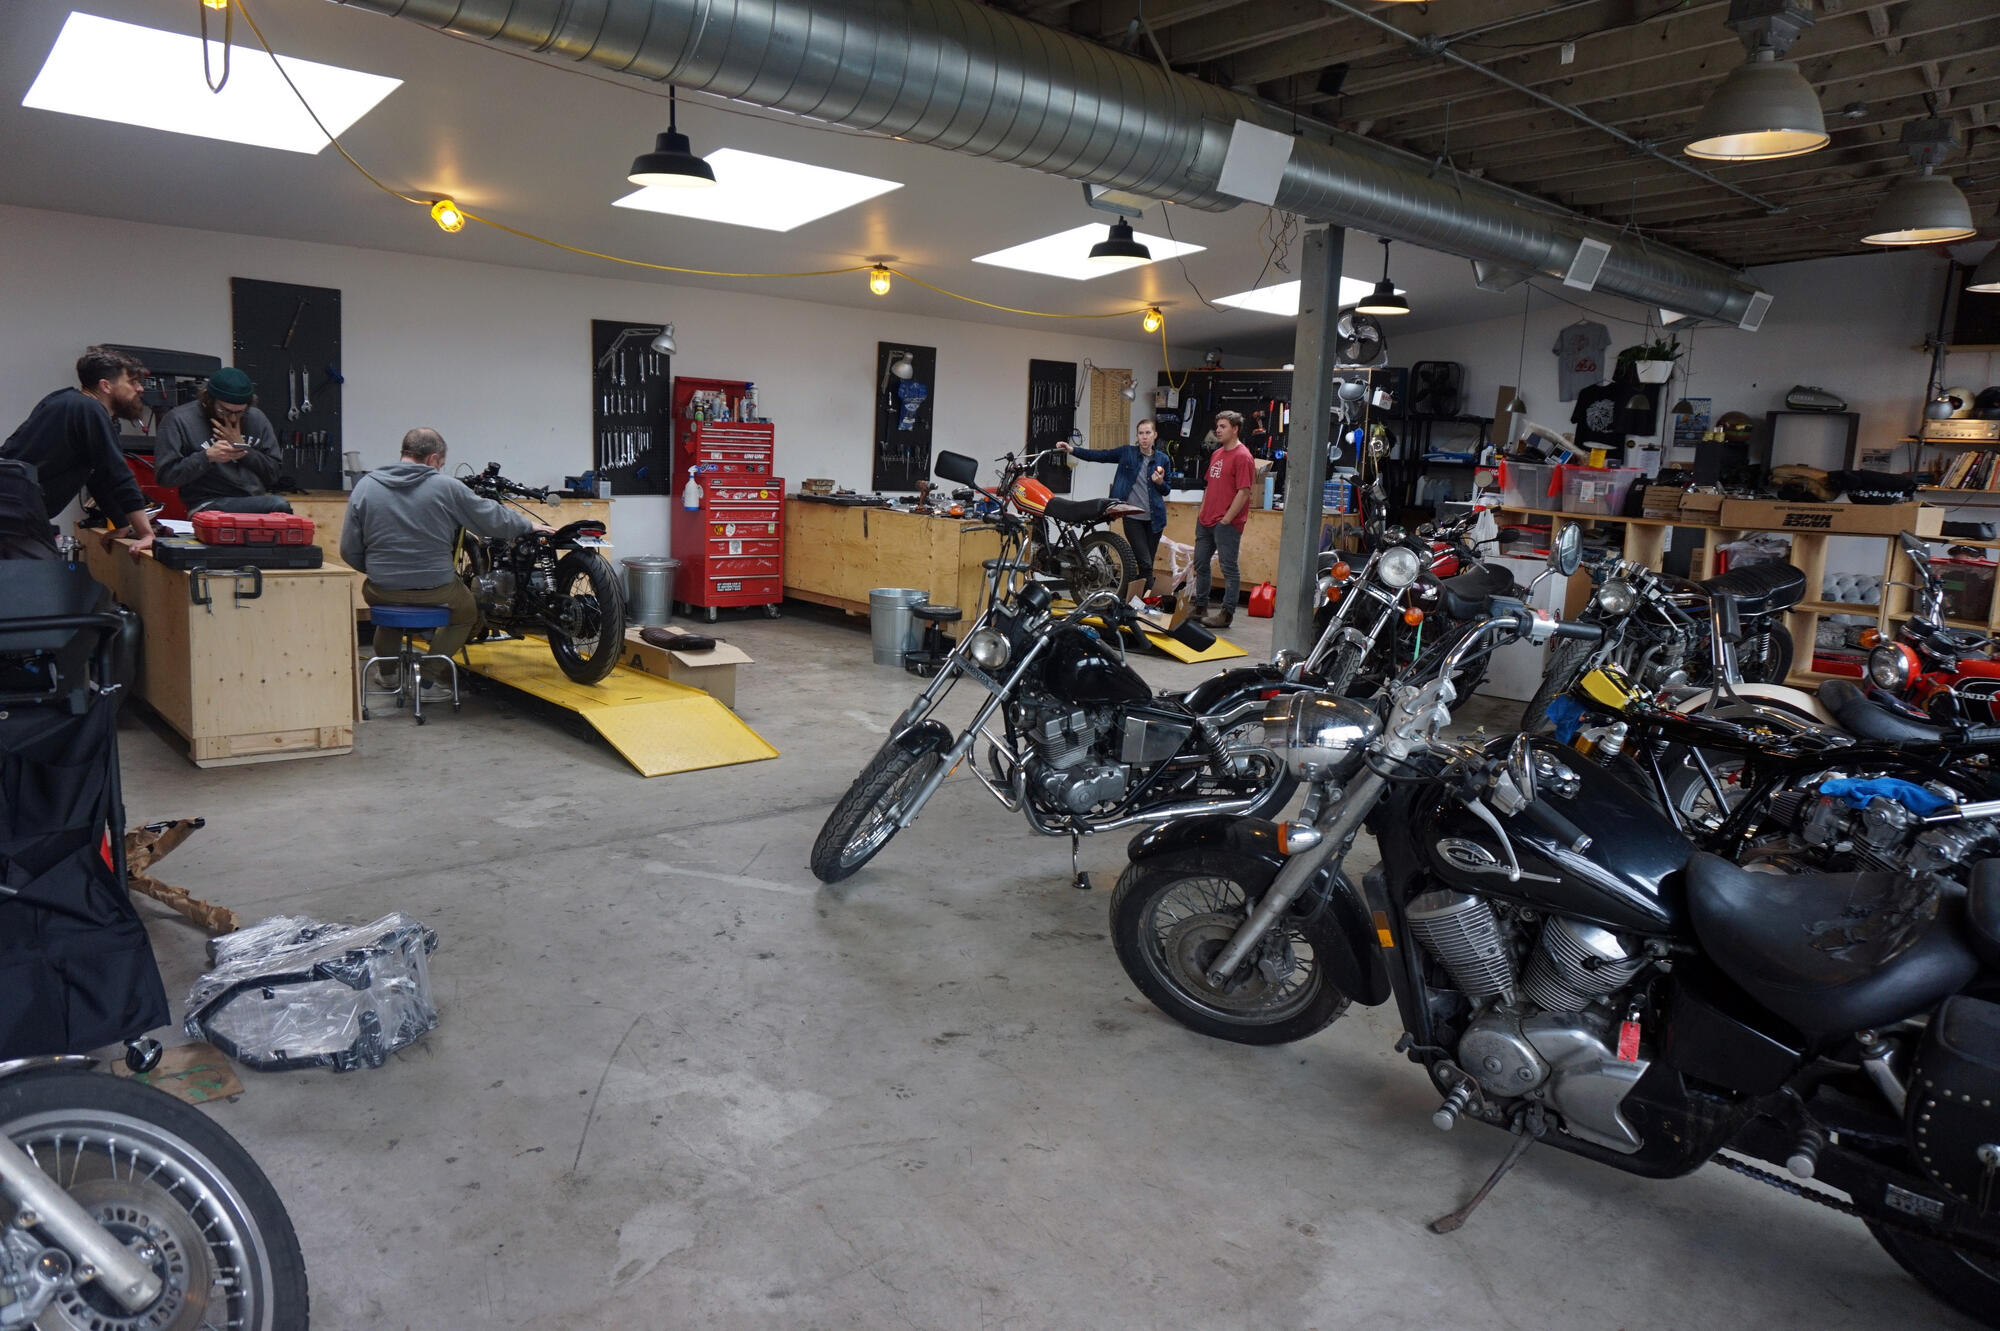 Moto revere diy motorcycle garage in toronto northern for Garage preparation moto